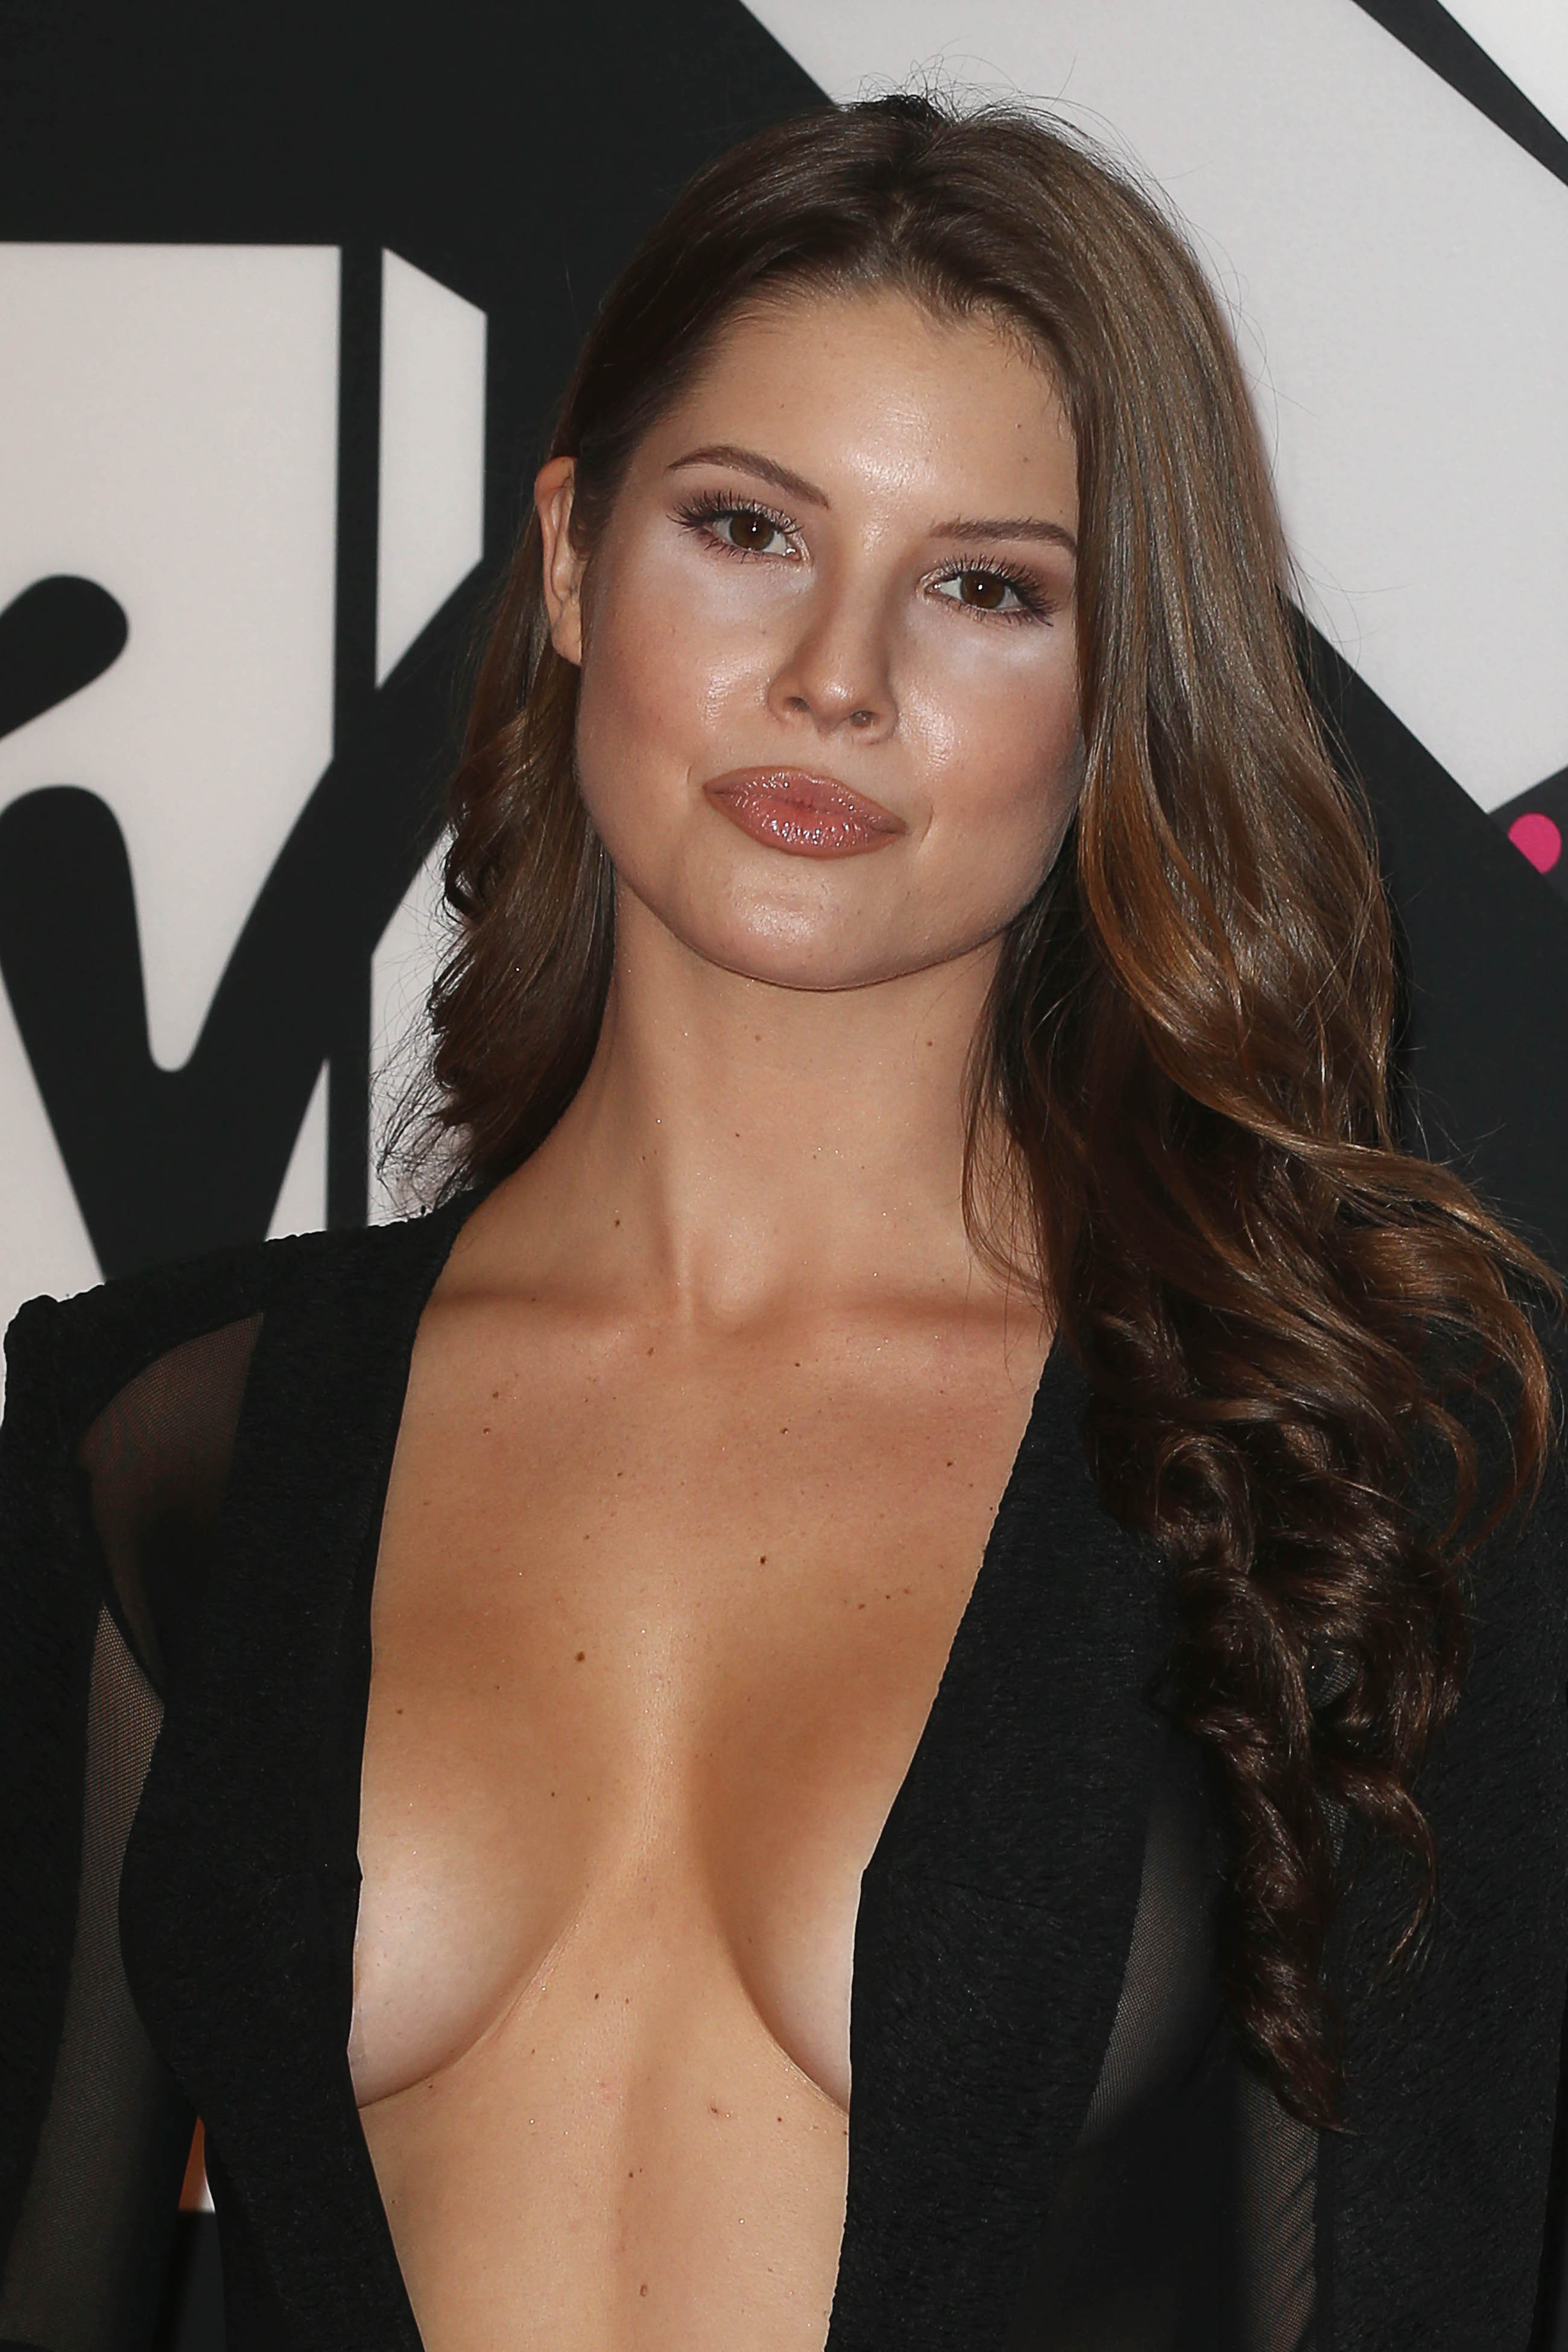 Amanda Cerny Nude - Page 4 Pictures, Naked, Oops, Topless -4318